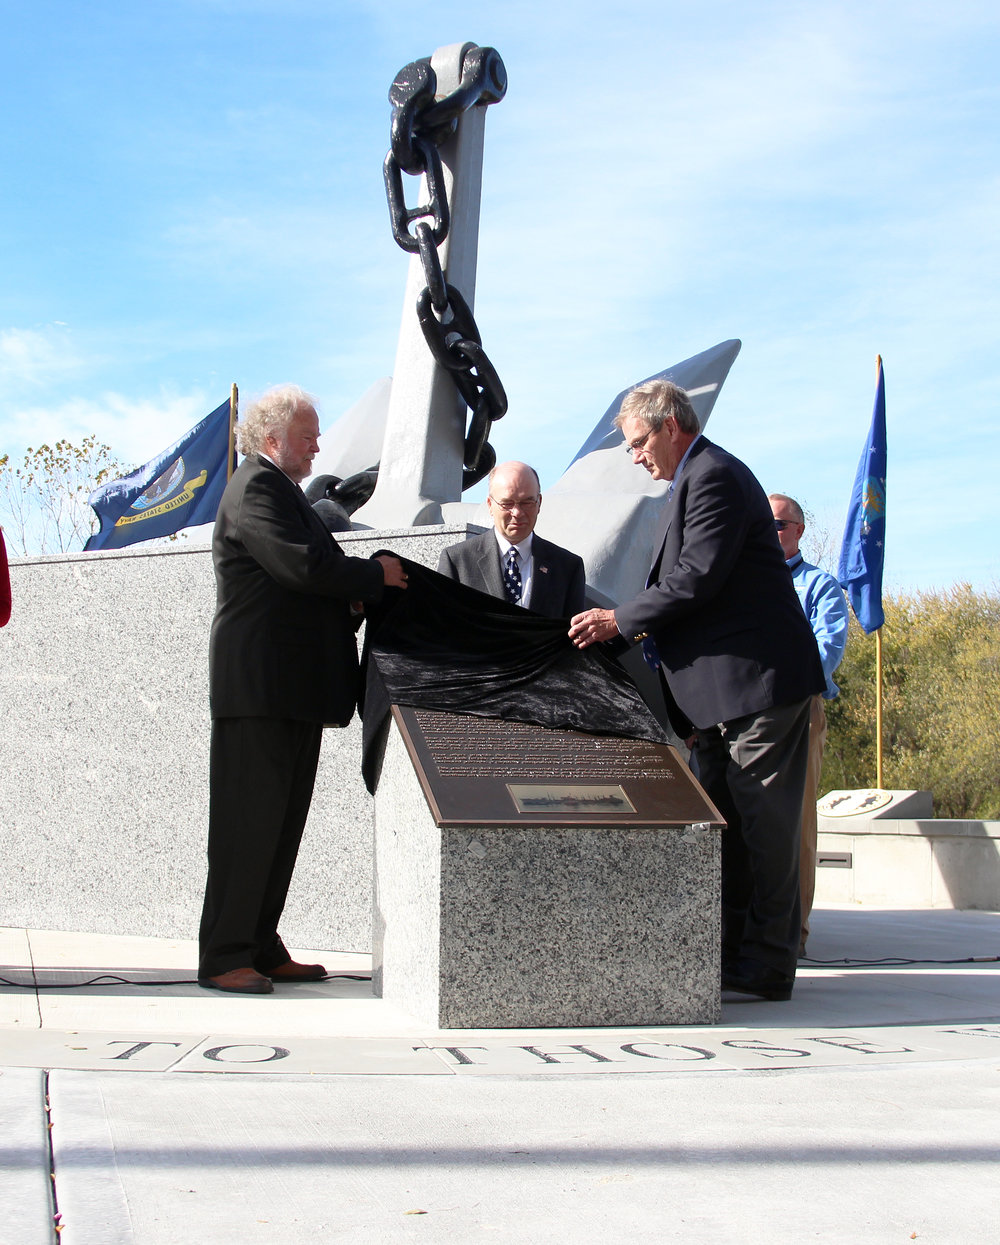 ROSS MARTIN/Citizen photo From left, Rev. Michael Lazio of Bethel House of Prayer, Platte City mayor Frank Offutt and Platte County Circuit Court judge James Van Amburg unveil a plaque at the new Platte City Veterans Monument during a ceremony on Veterans Day, Friday, Nov. 11 at Settler's Crossing Park in Platte City.